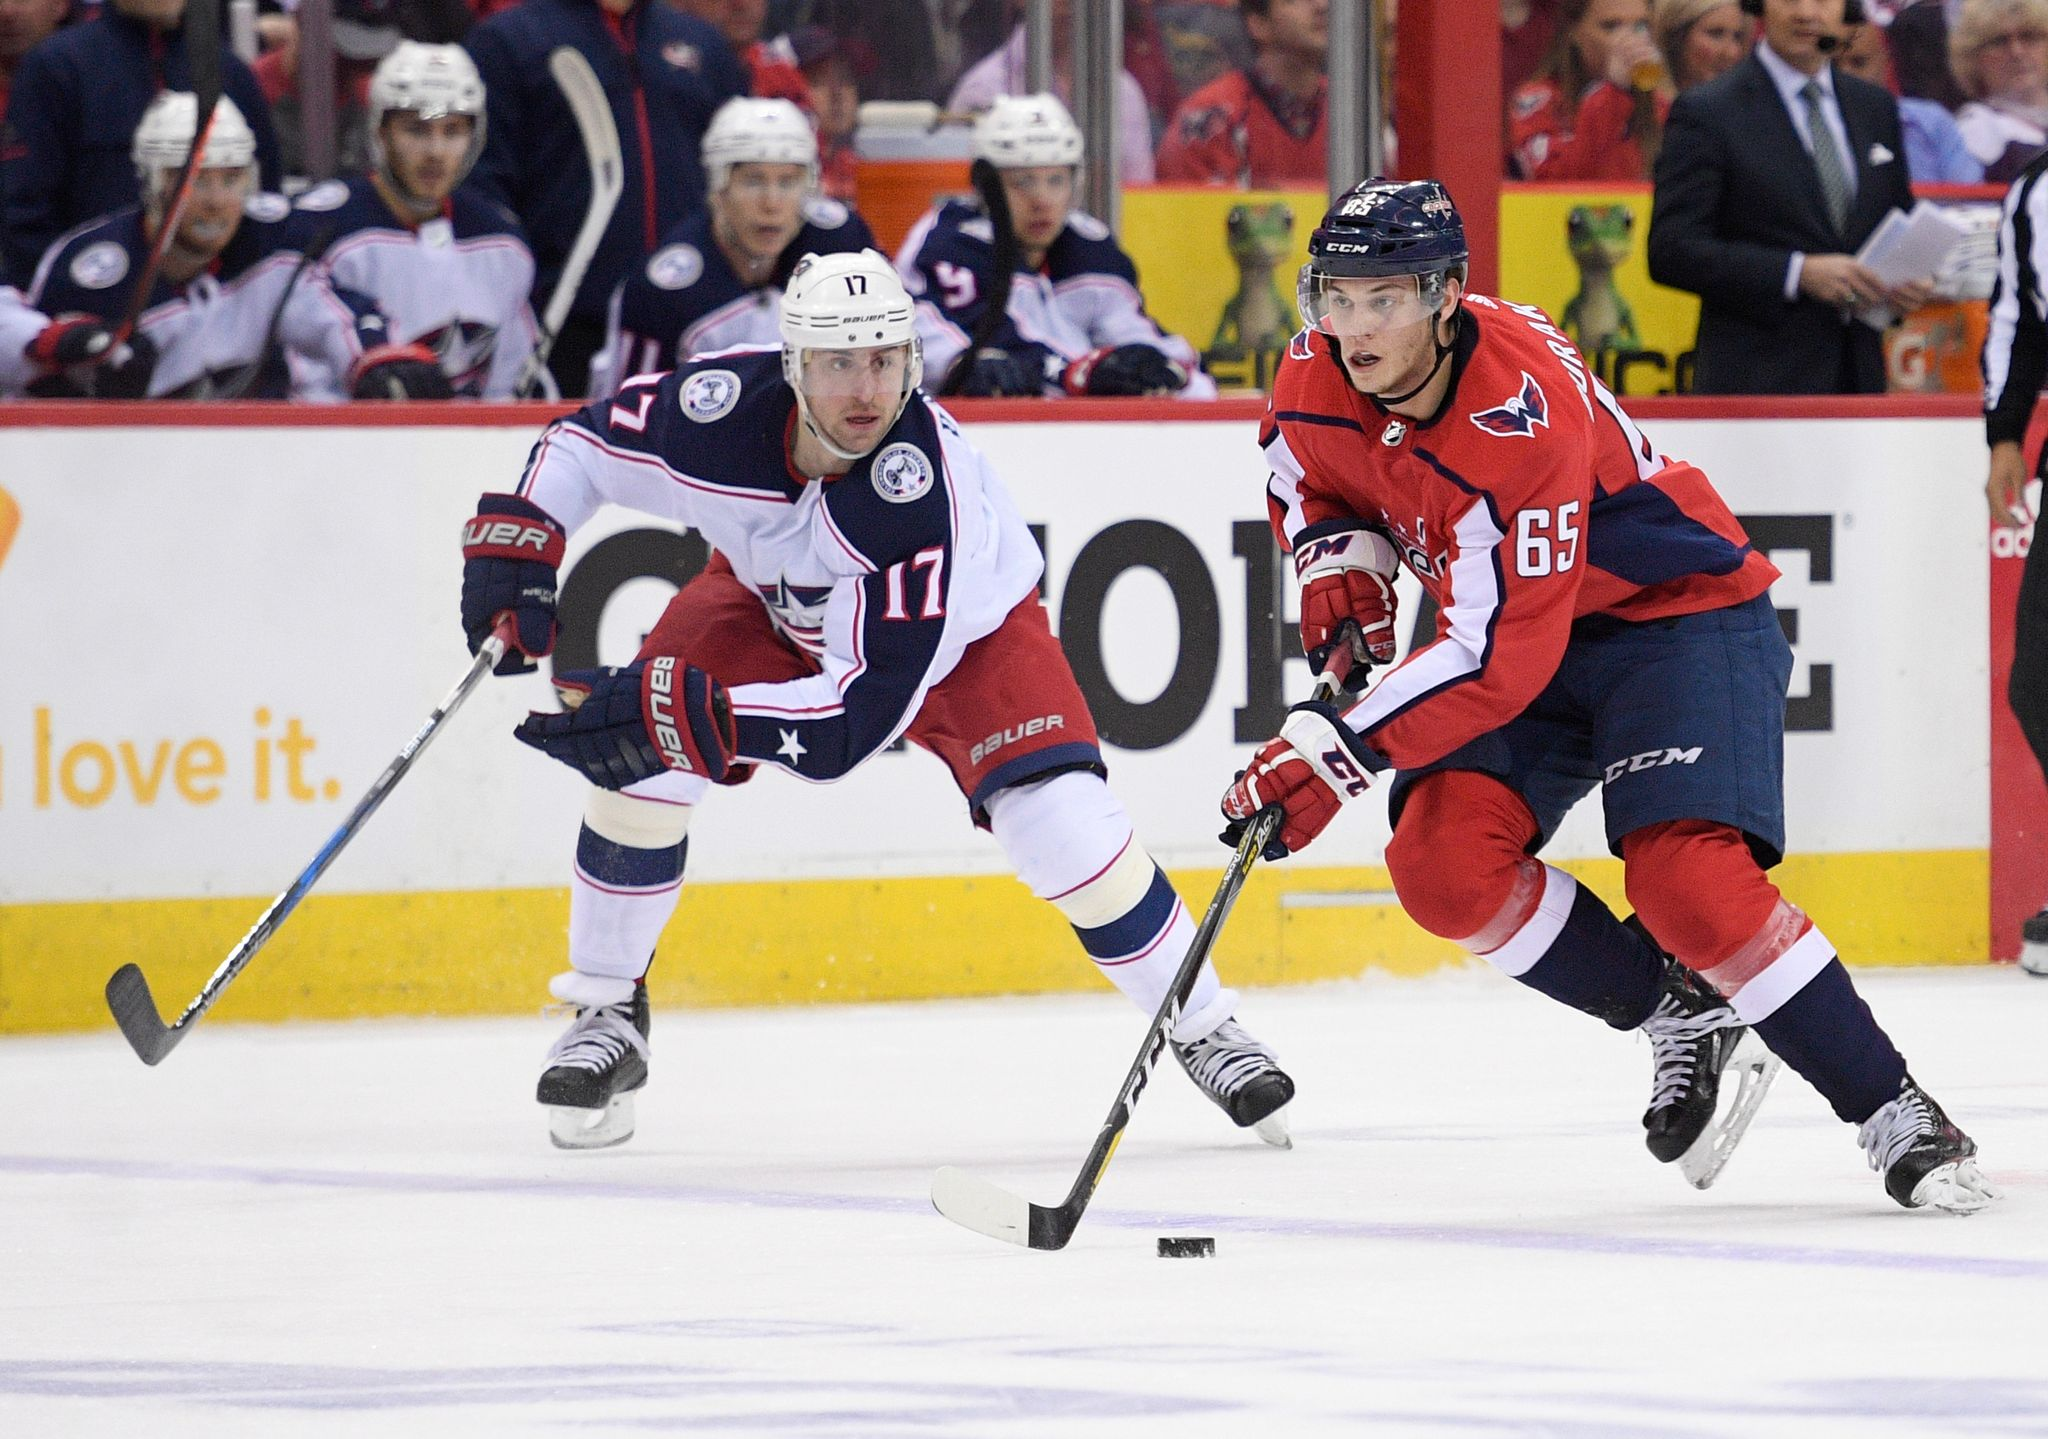 Blue_jackets_capitals_hockey_65975.jpg-c69e1_s2048x1439